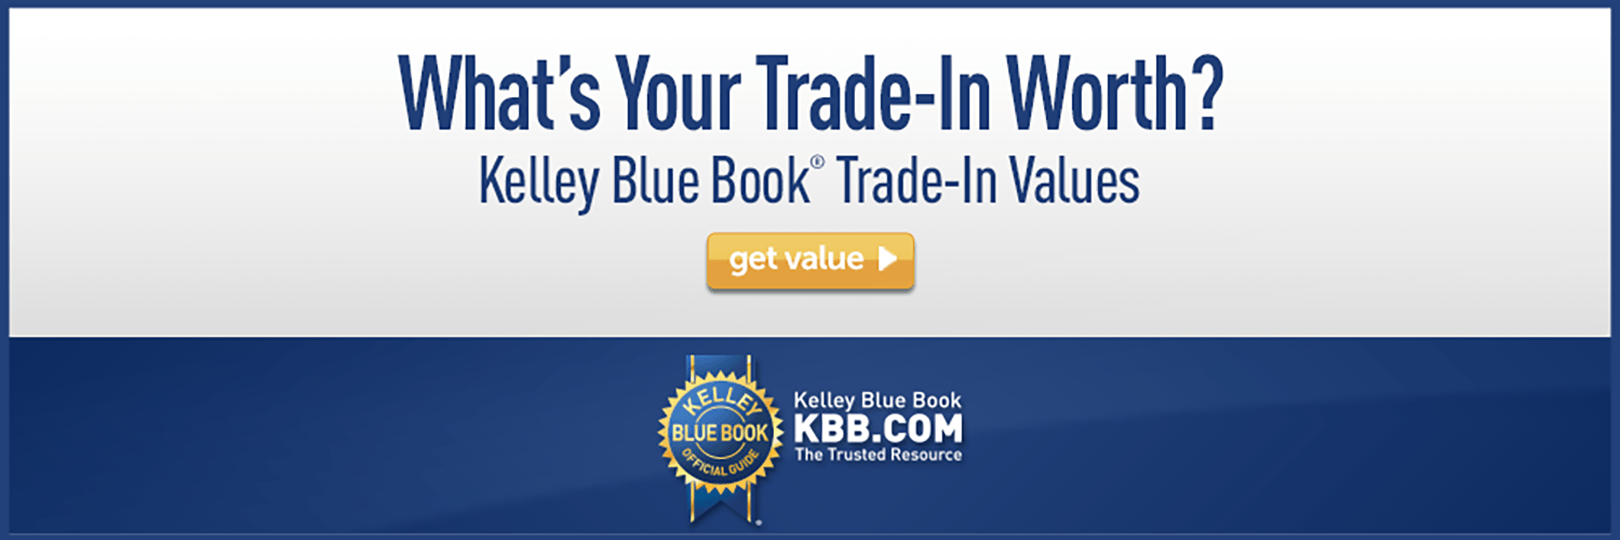 KBB Calculate Your Trade